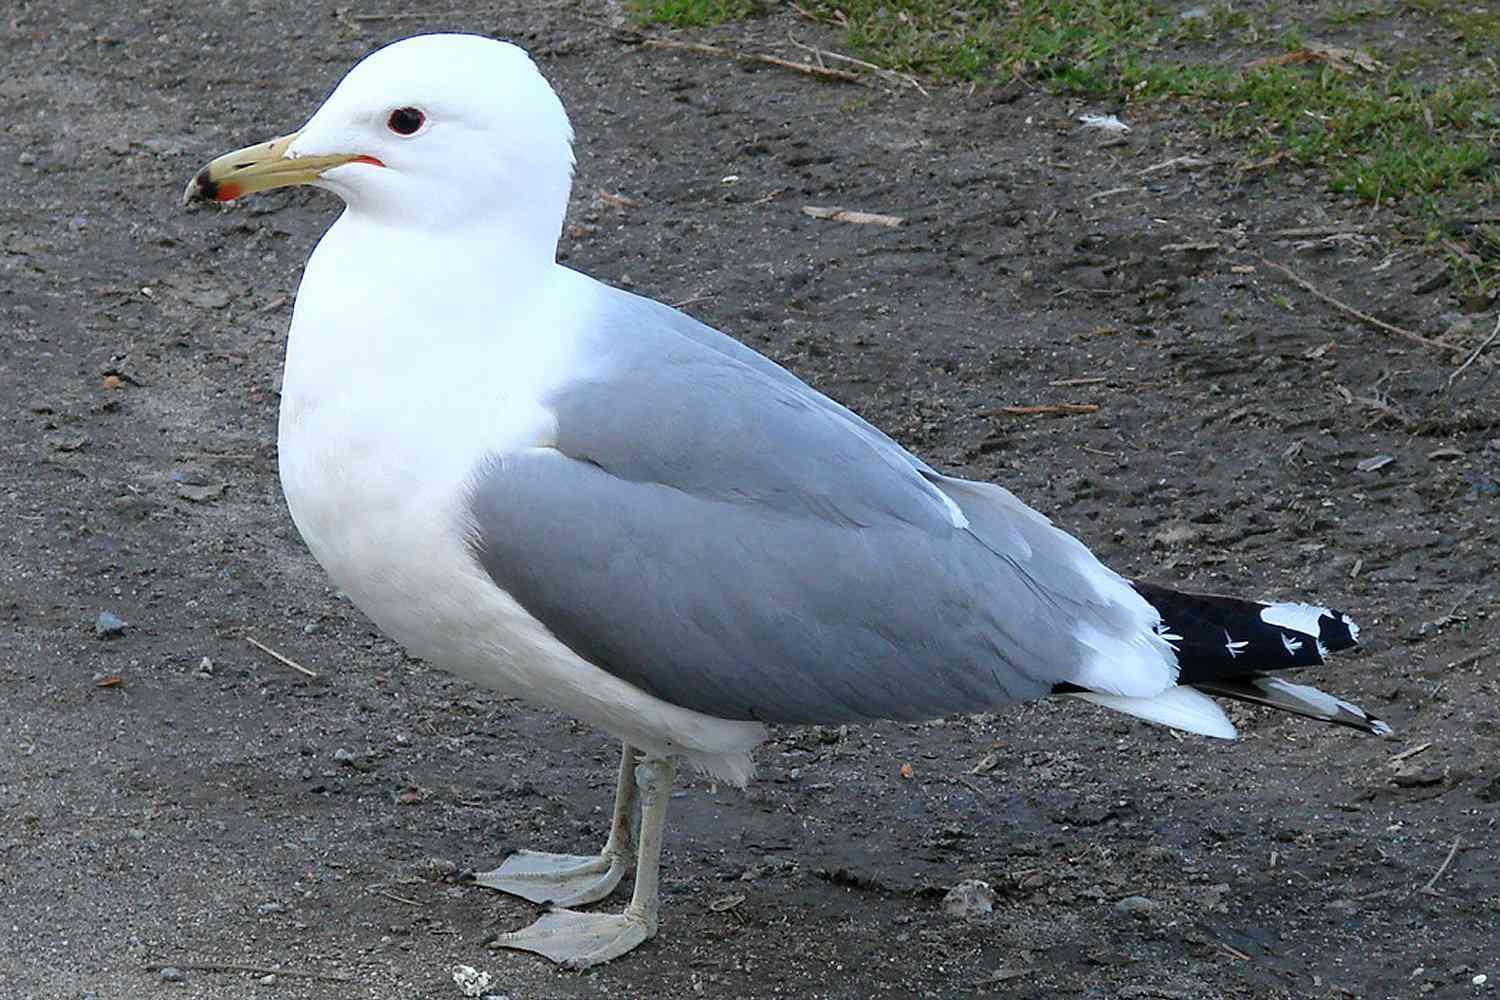 California Gull, the state bird of Utah, standing on a dirt road.